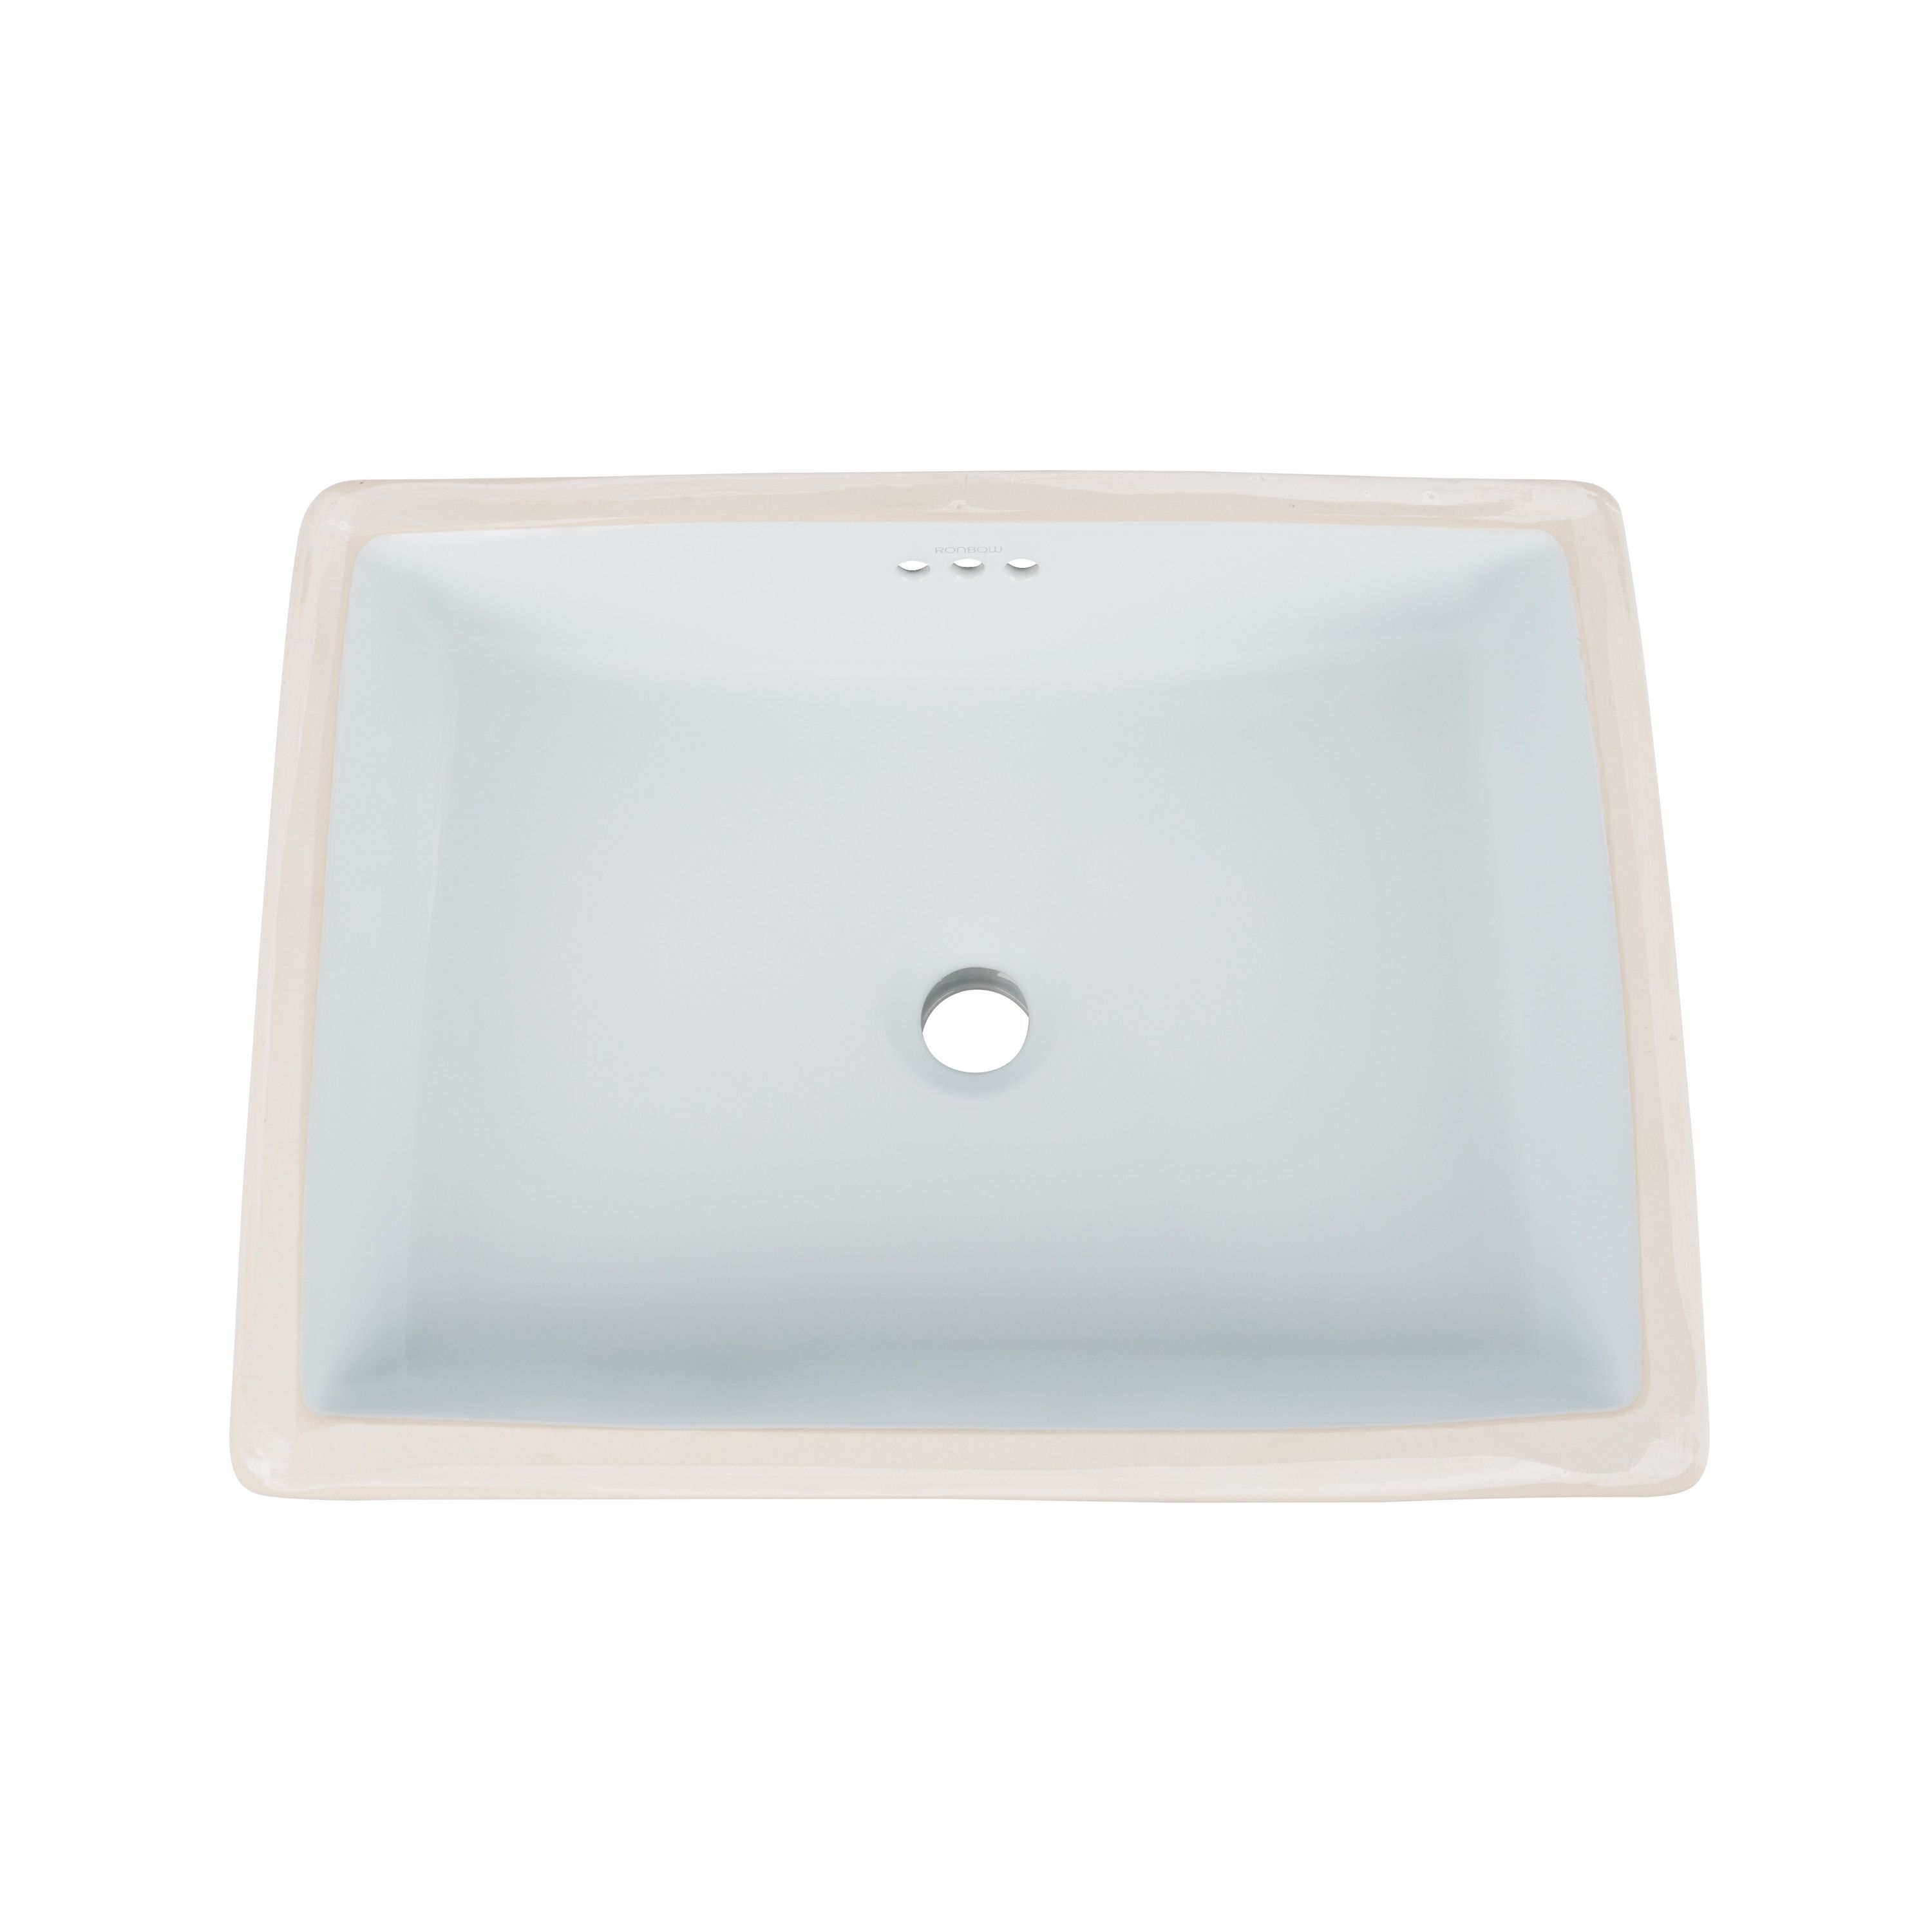 Ronbow Plane 20 Inch Ceramic Undermount Bathroom Vessel Sink With Overflow  By Ronbow